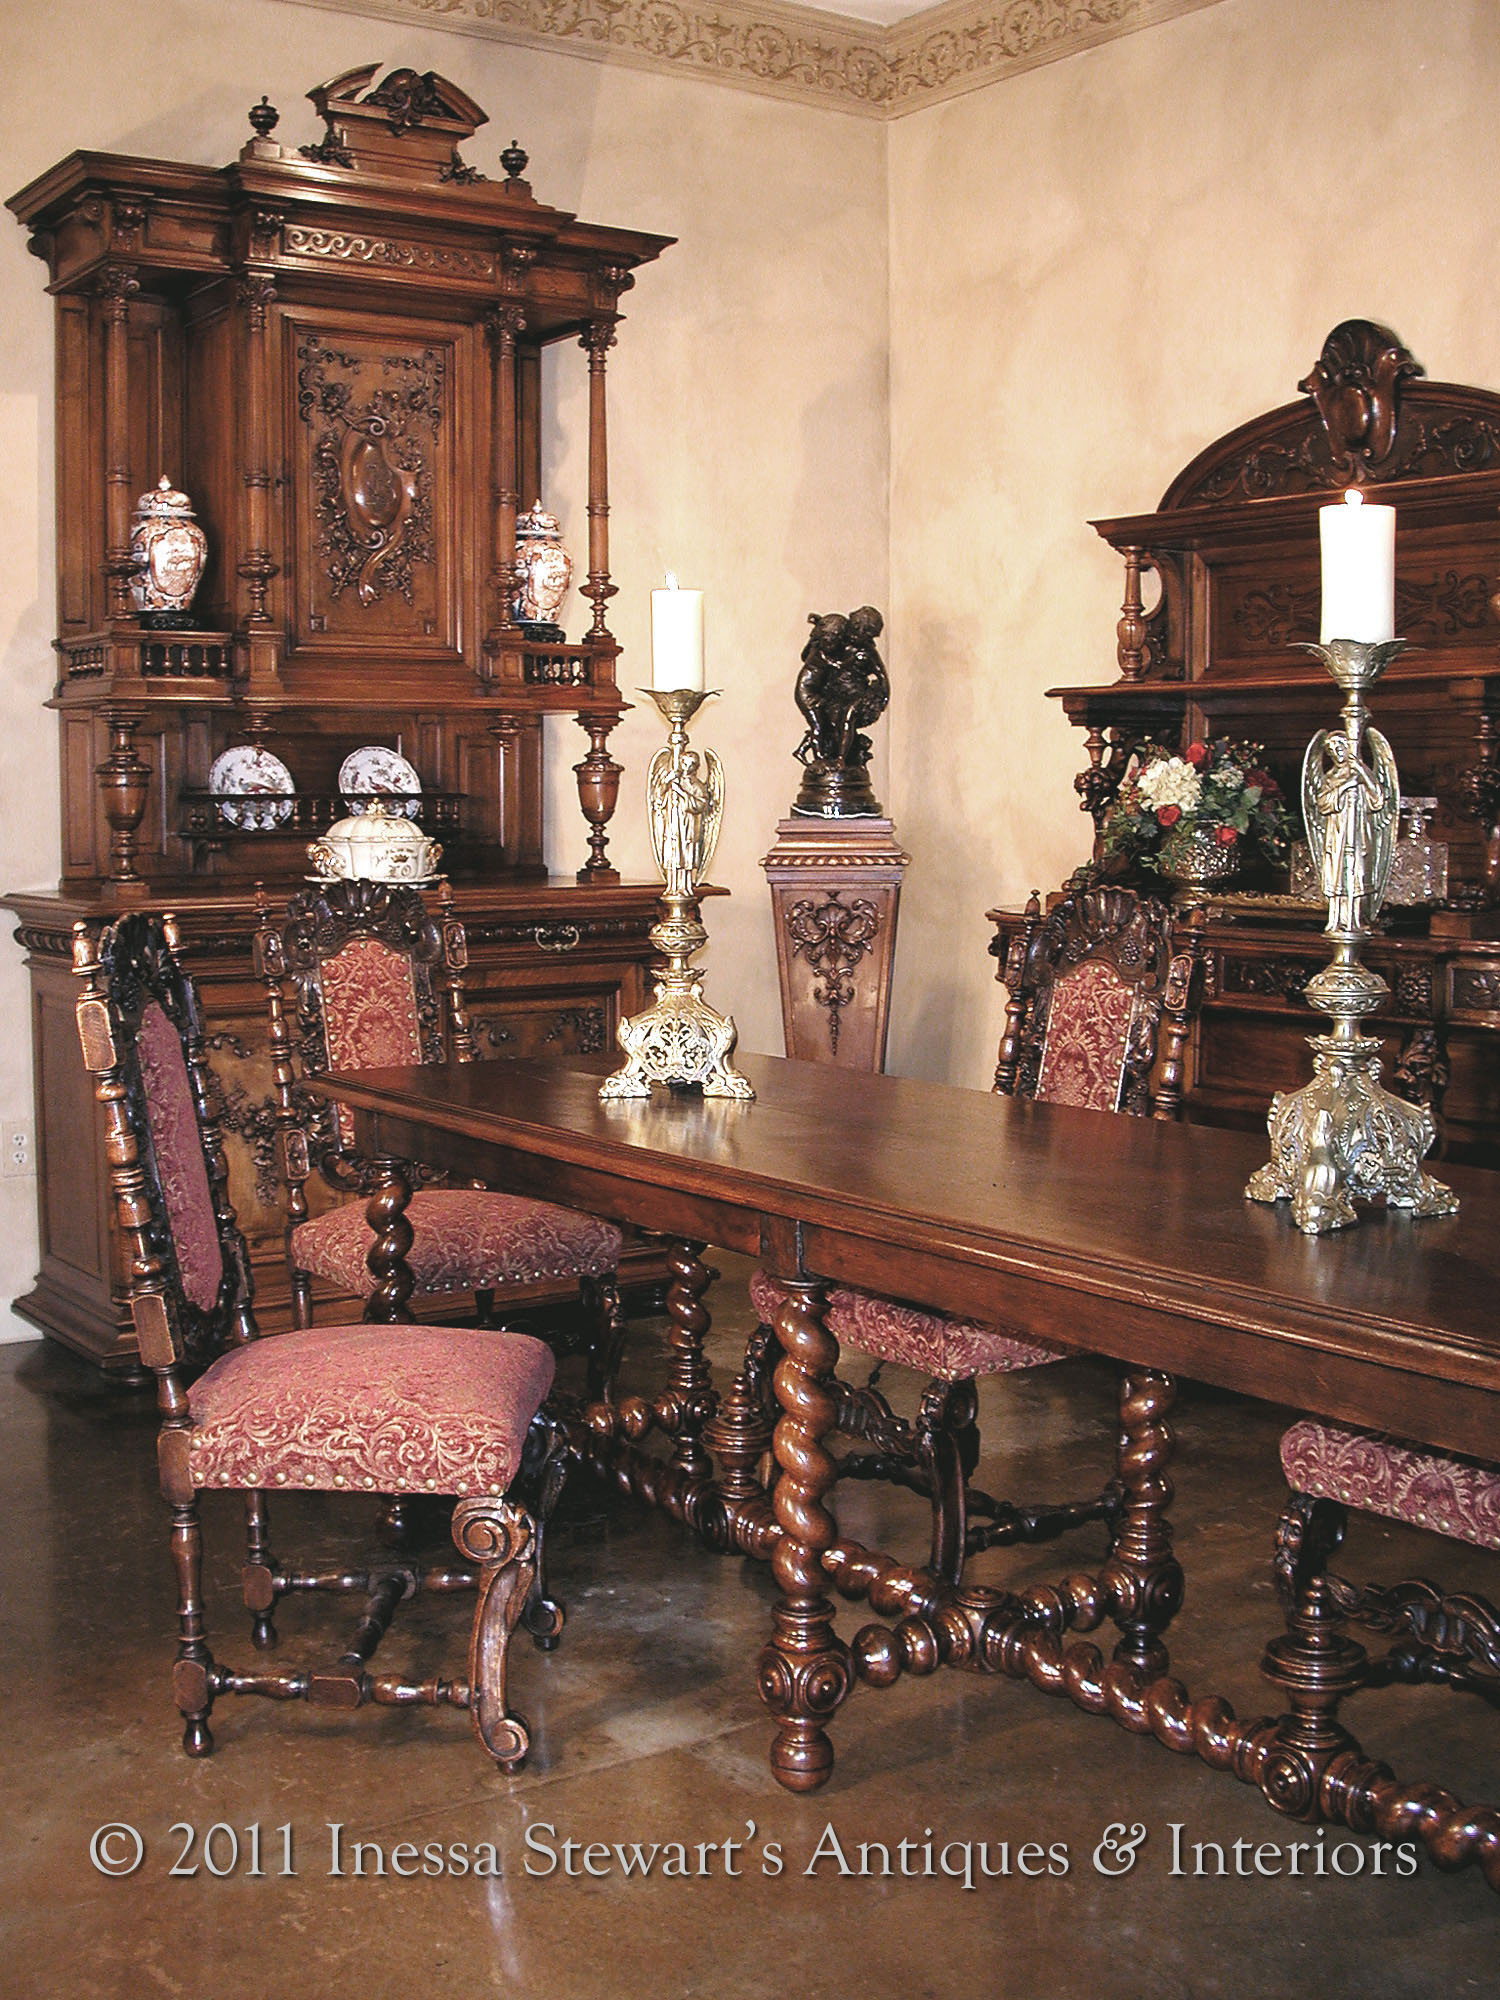 To ... - Antique French Furniture ~ Glorious Beginnings